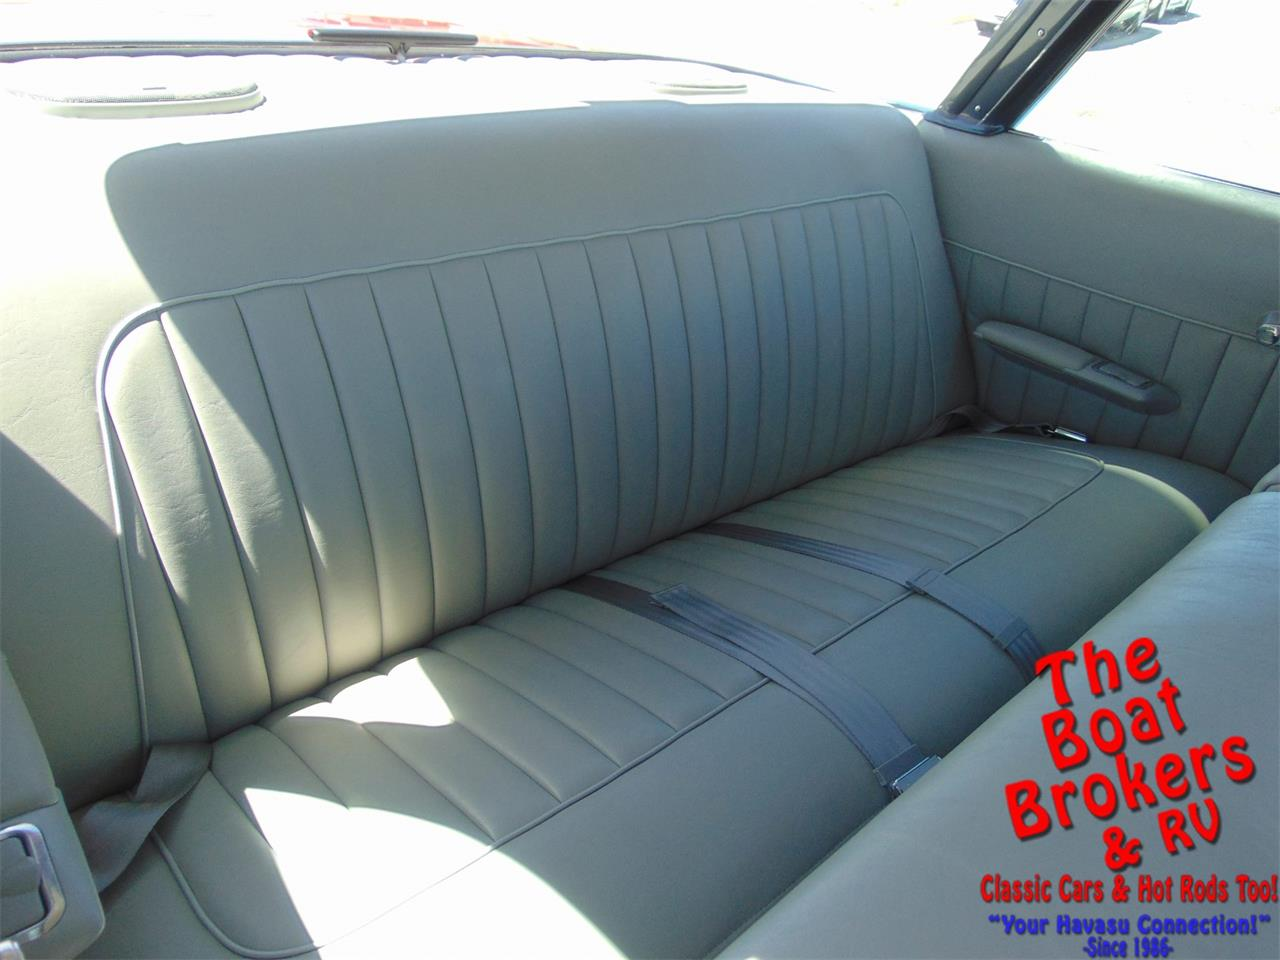 Large Picture of Classic 1961 Chevrolet Bel Air - $45,995.00 Offered by The Boat Brokers - PXT2